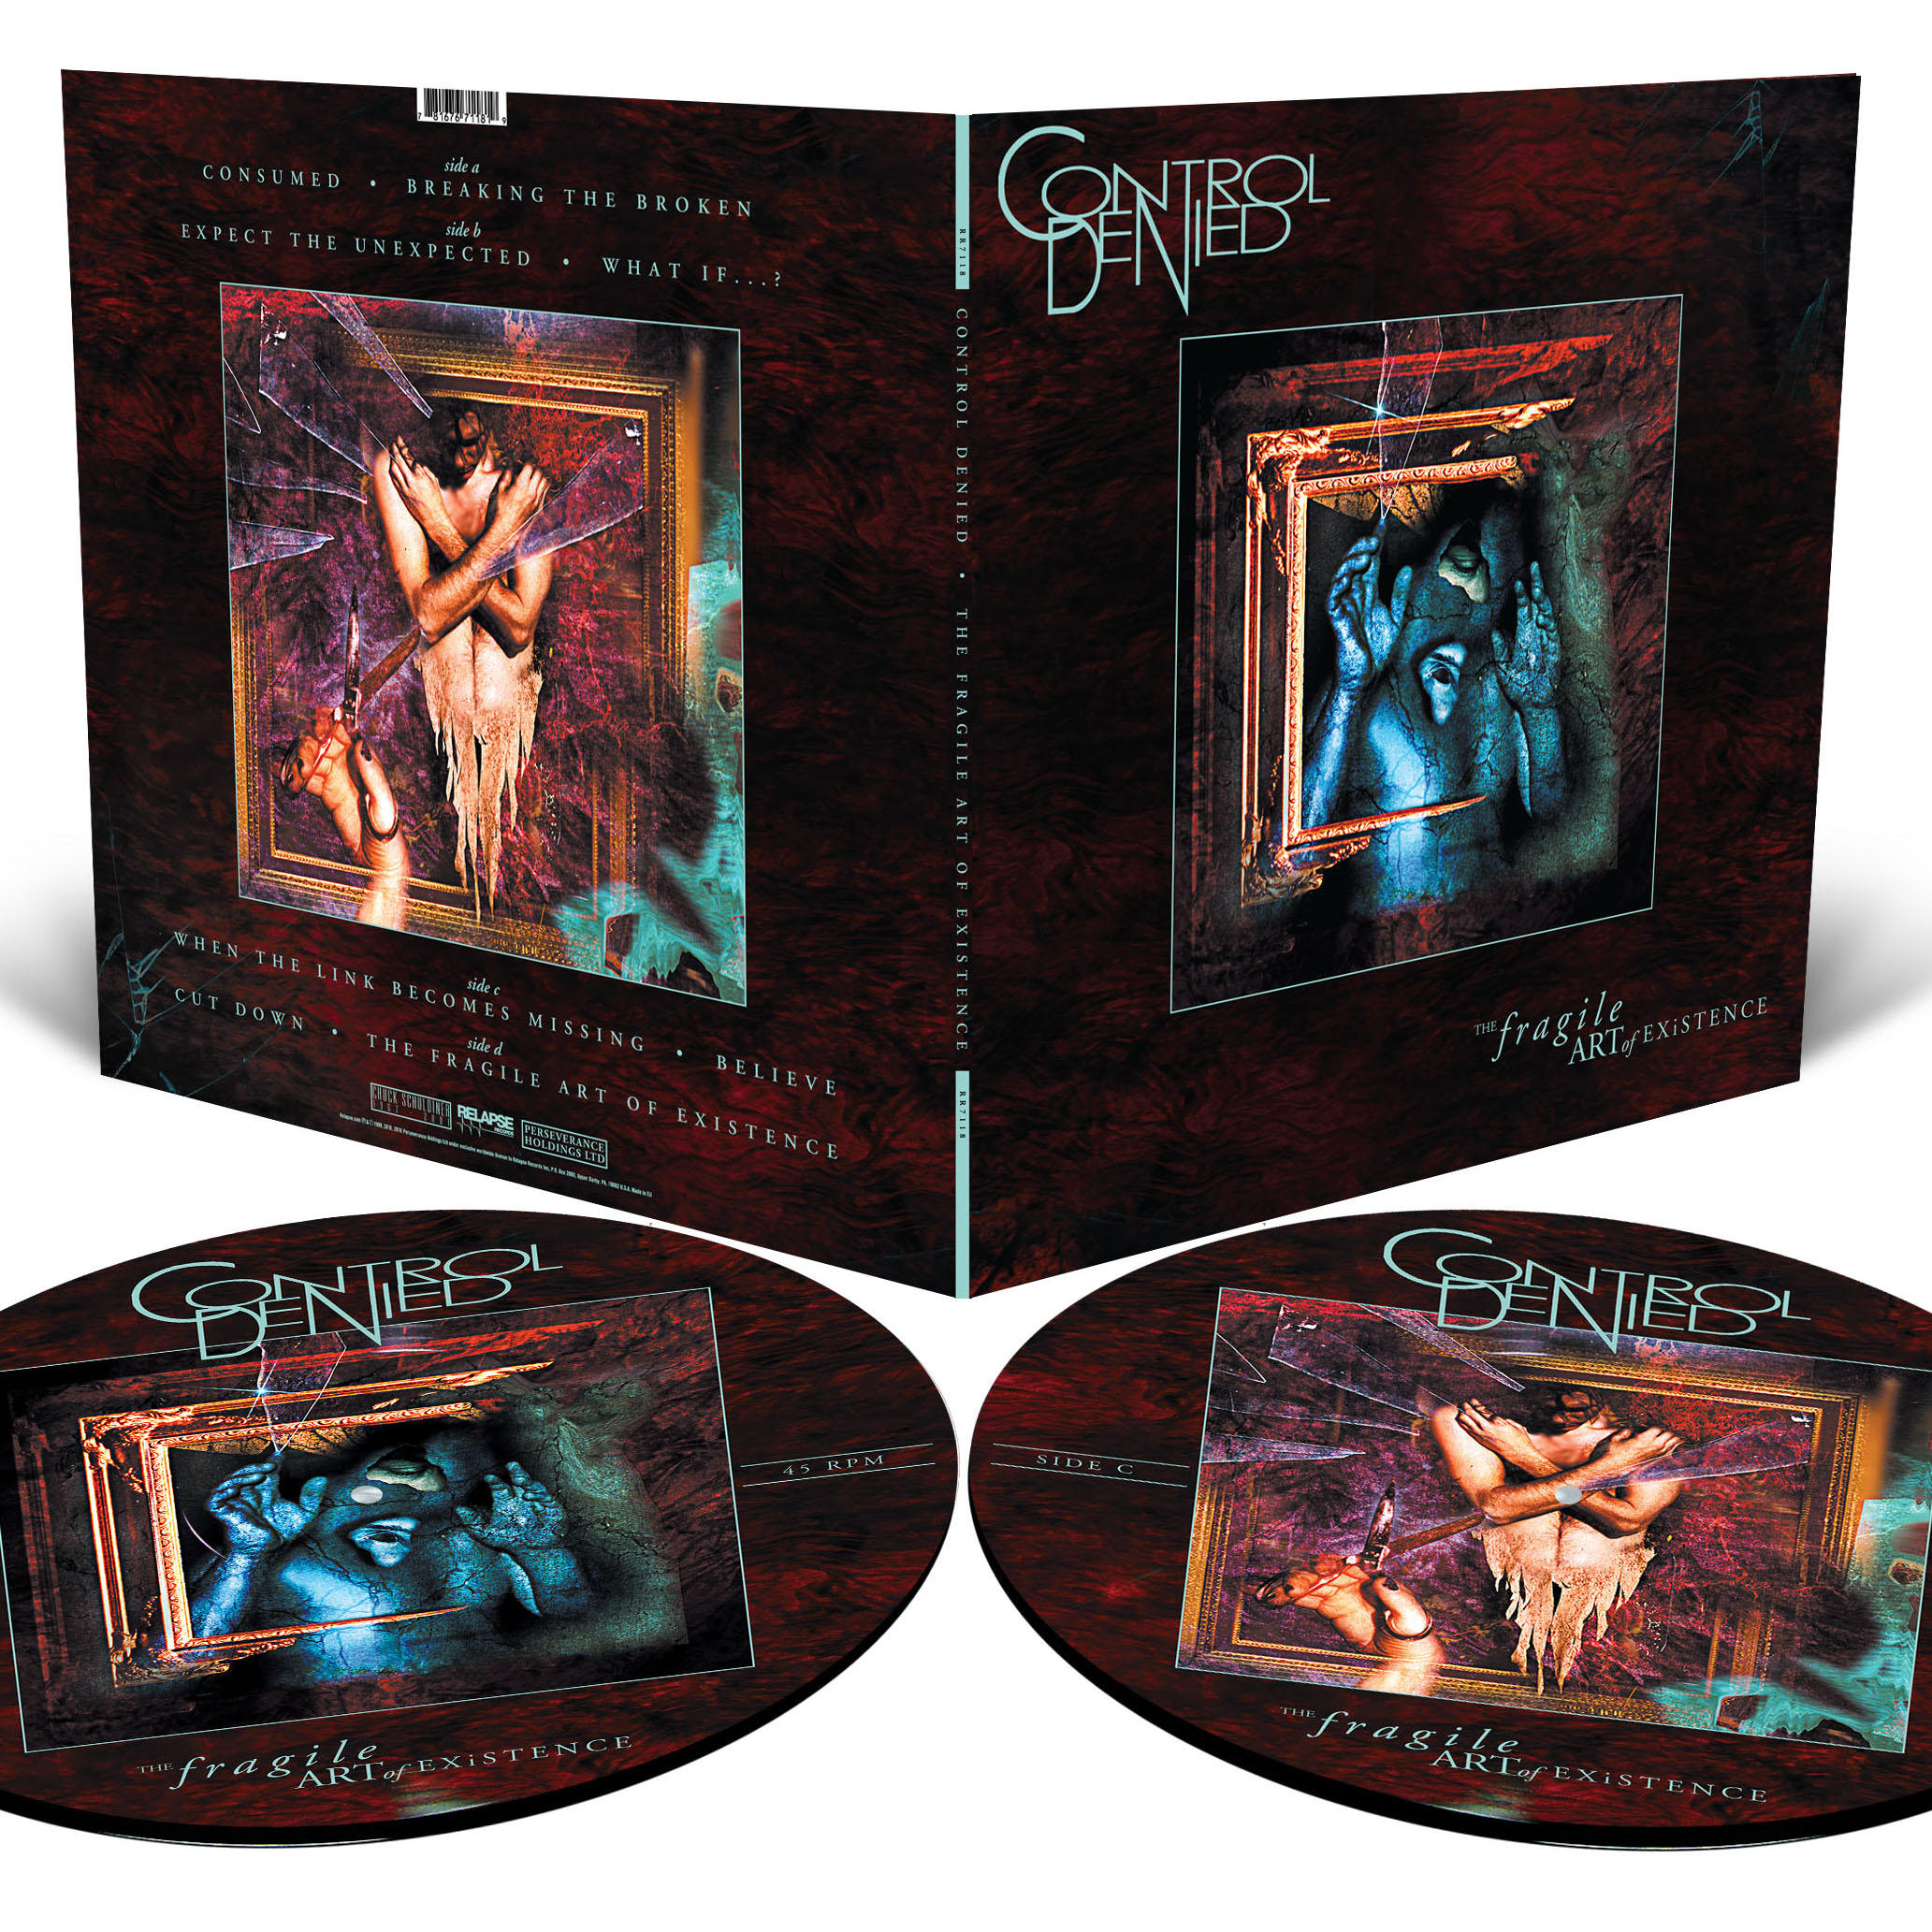 The Fragile Art Of Existence Reissue